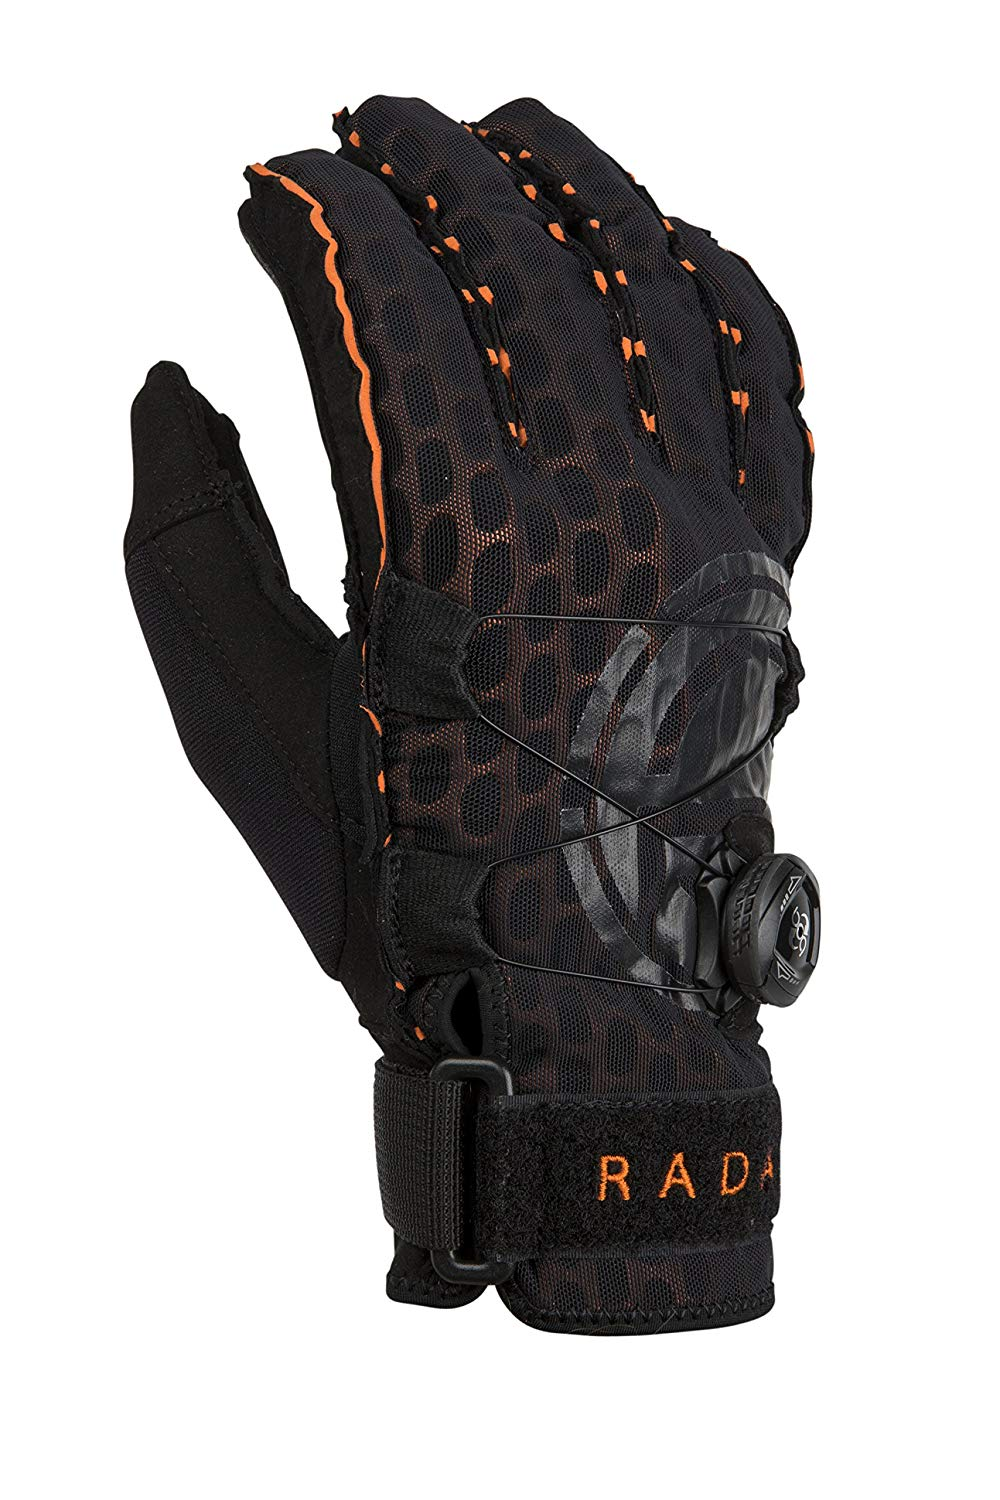 2019 Vapor - Boa-A - Inside-Out Glove